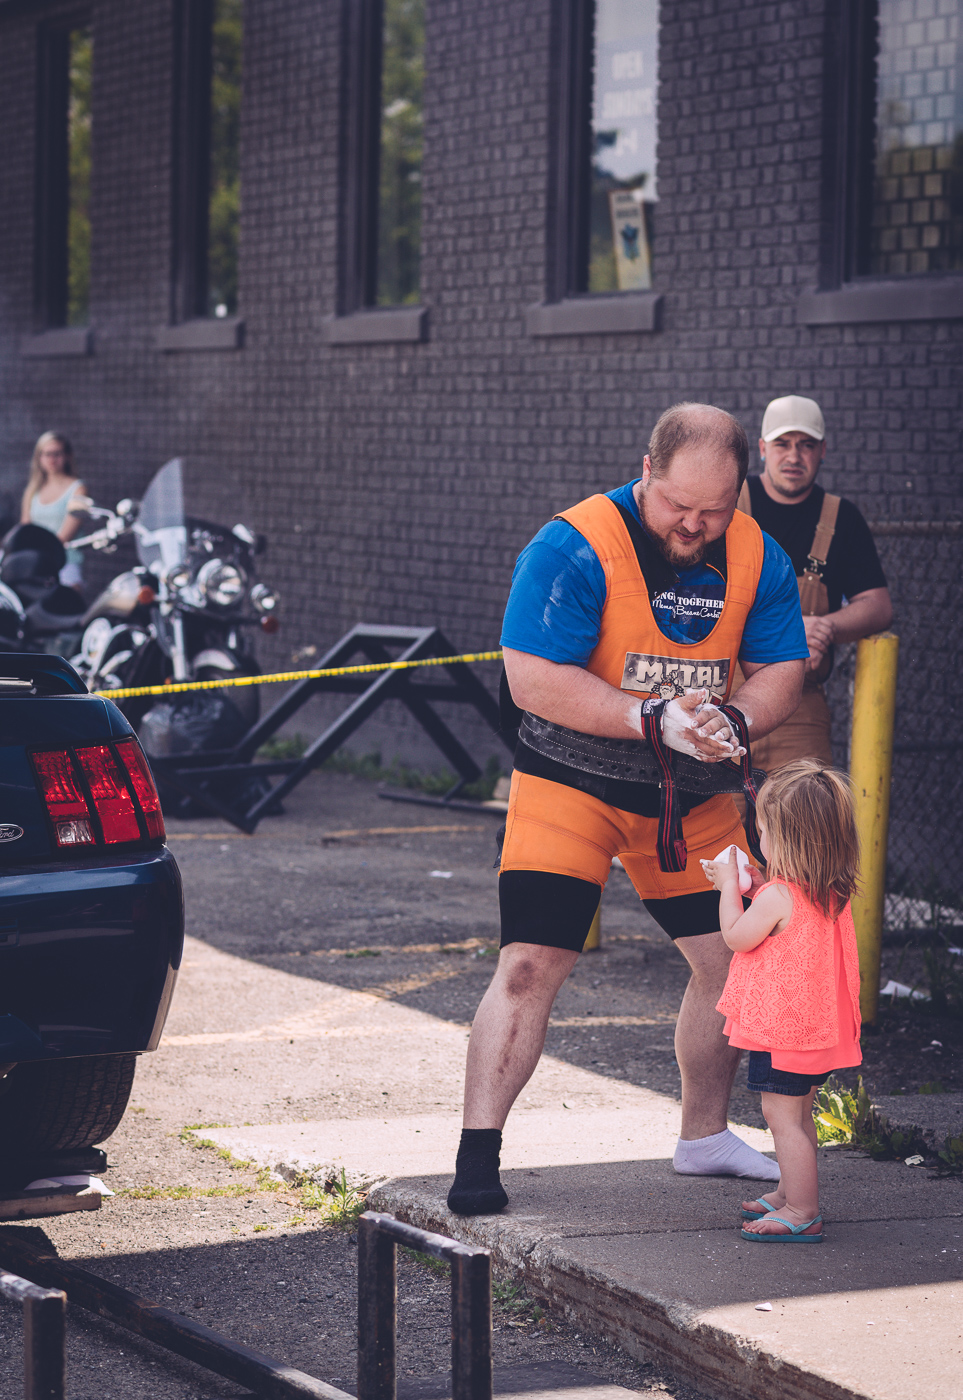 strongman_2016_blog3.jpg